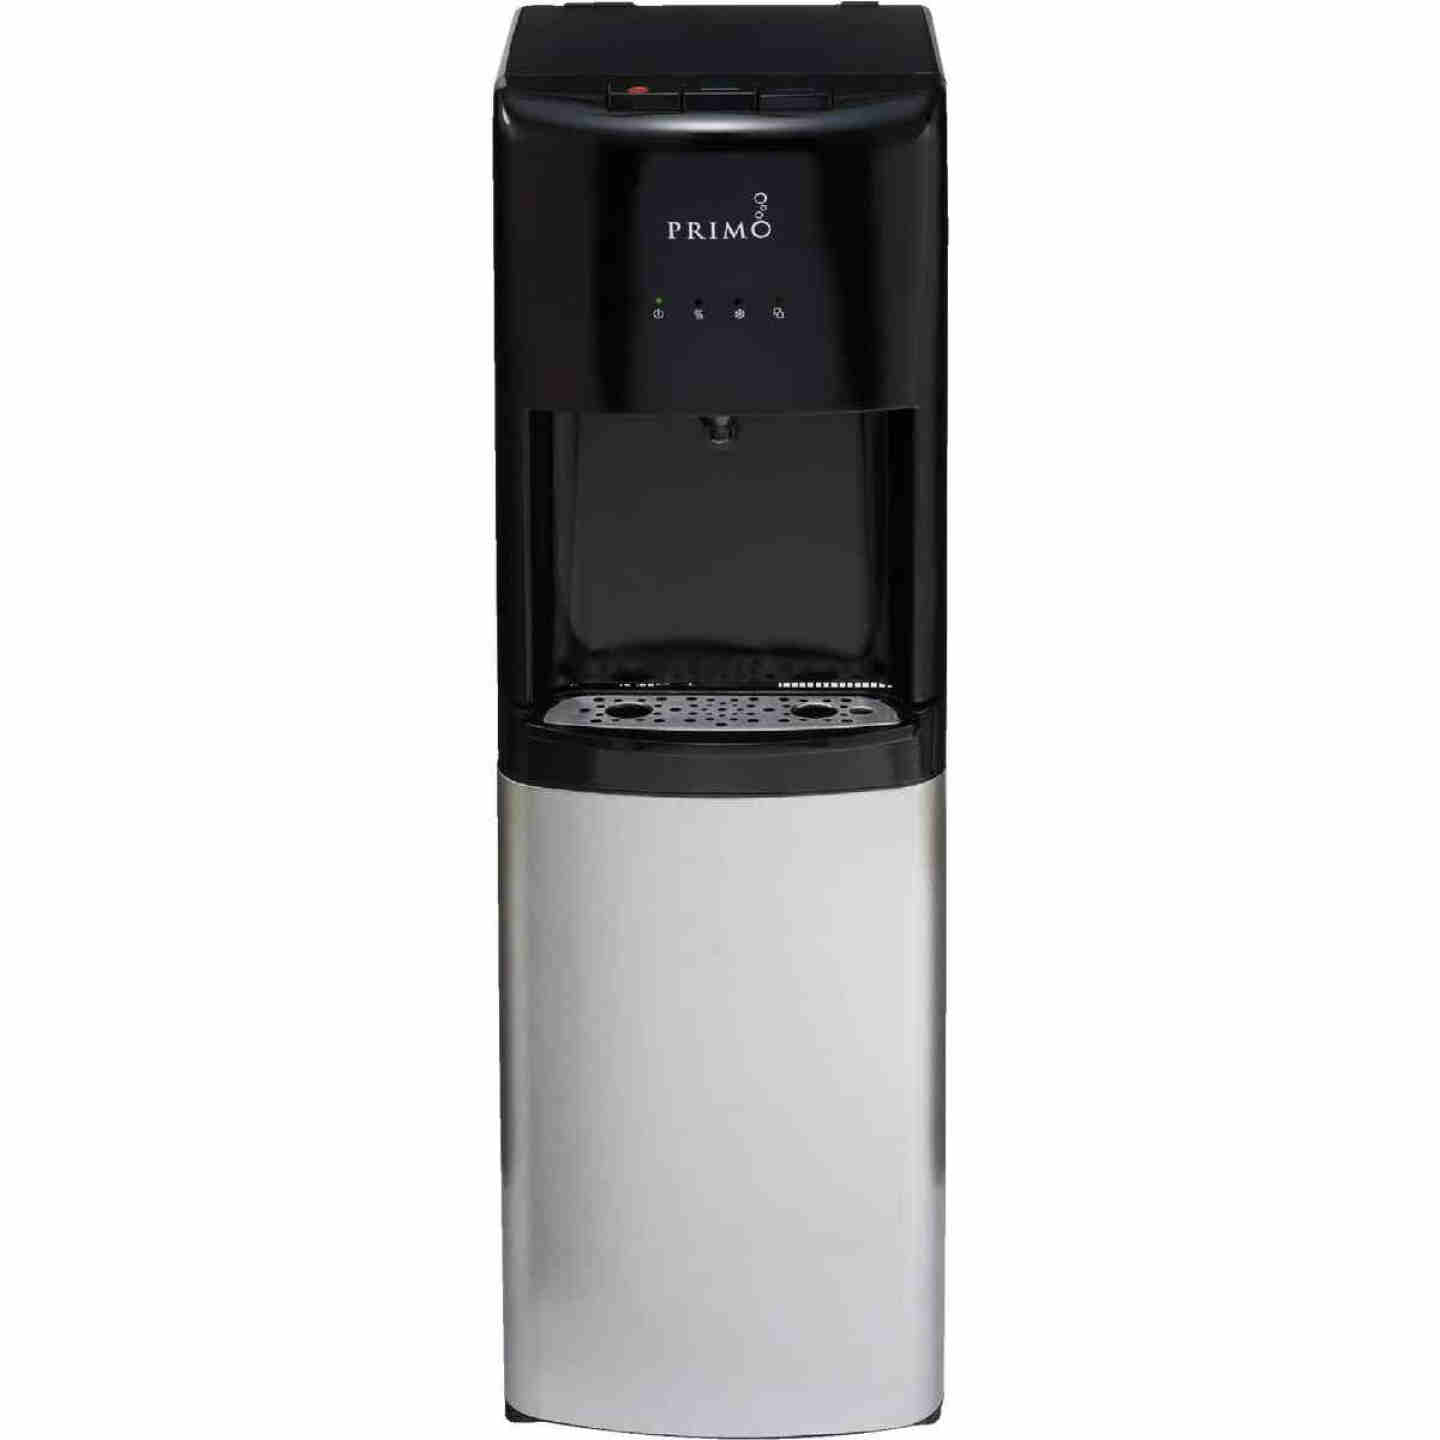 Primo Residential/Commercial 3/5 Gal. Hot/Cold Bottom Loading Water Cooler Image 1